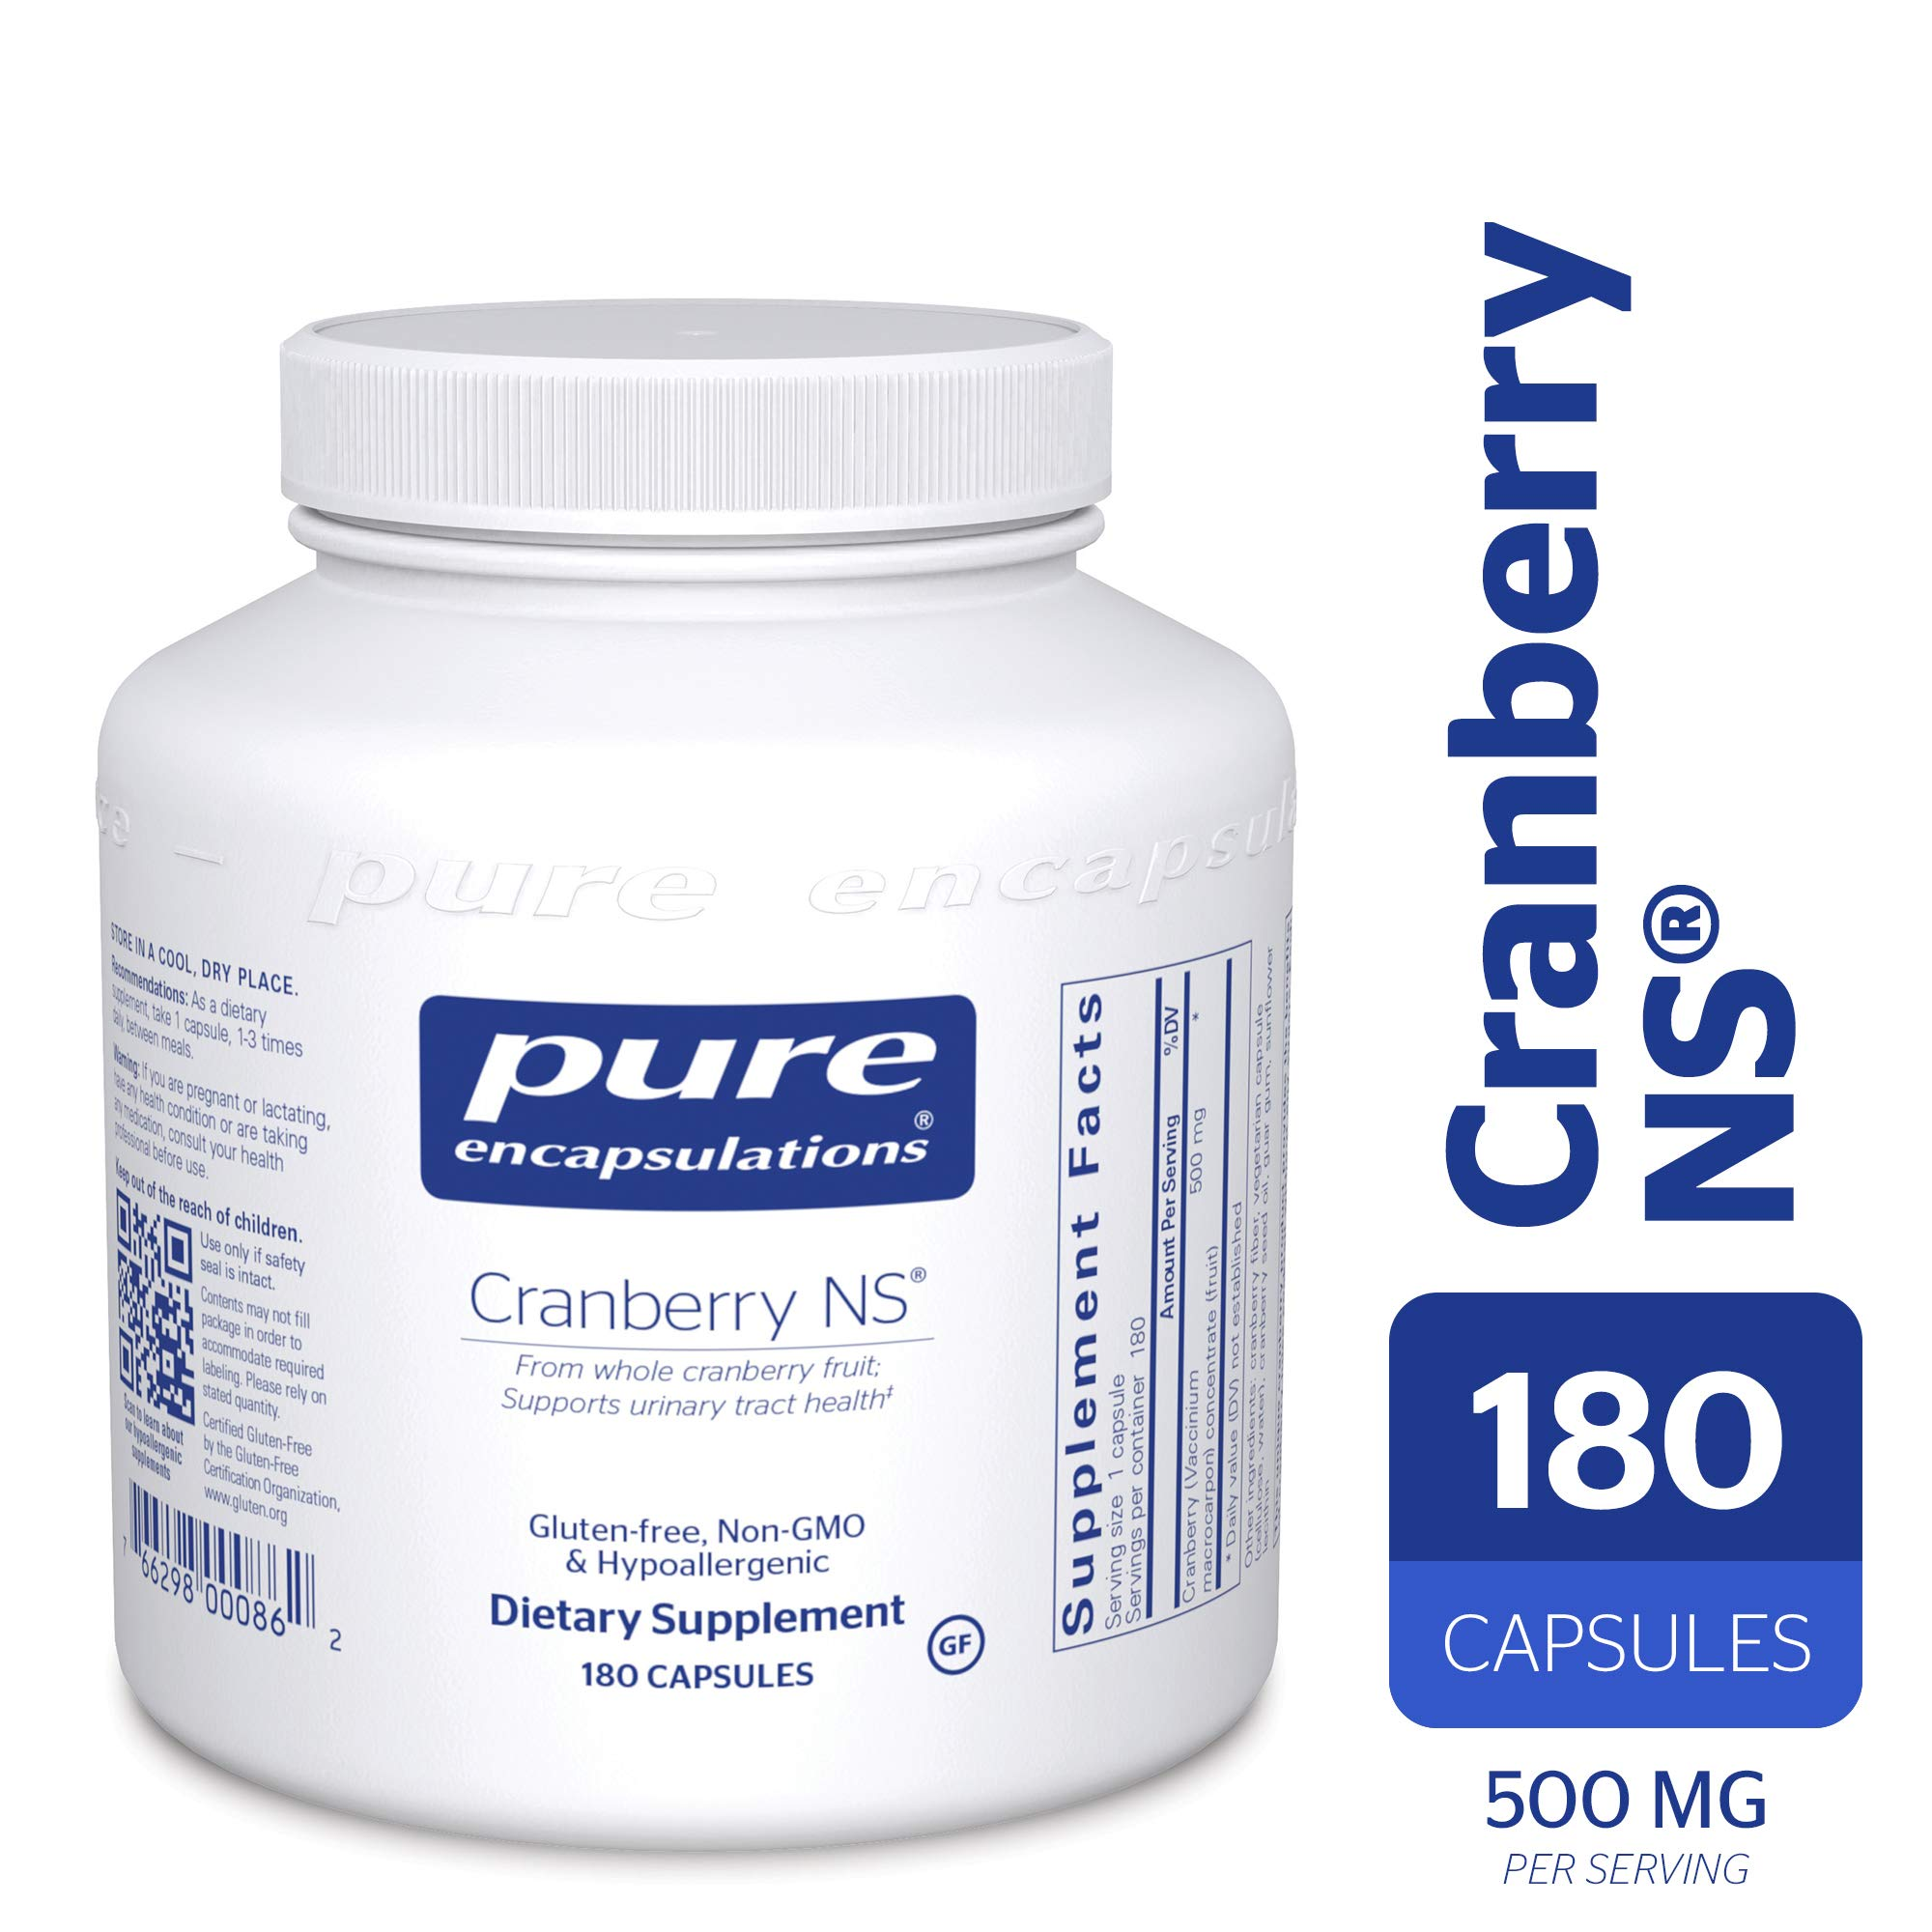 Pure Encapsulations - Cranberry NS - Hypoallergenic Supplement to Support Urinary Tract Health* - 180 Capsules by Pure Encapsulations